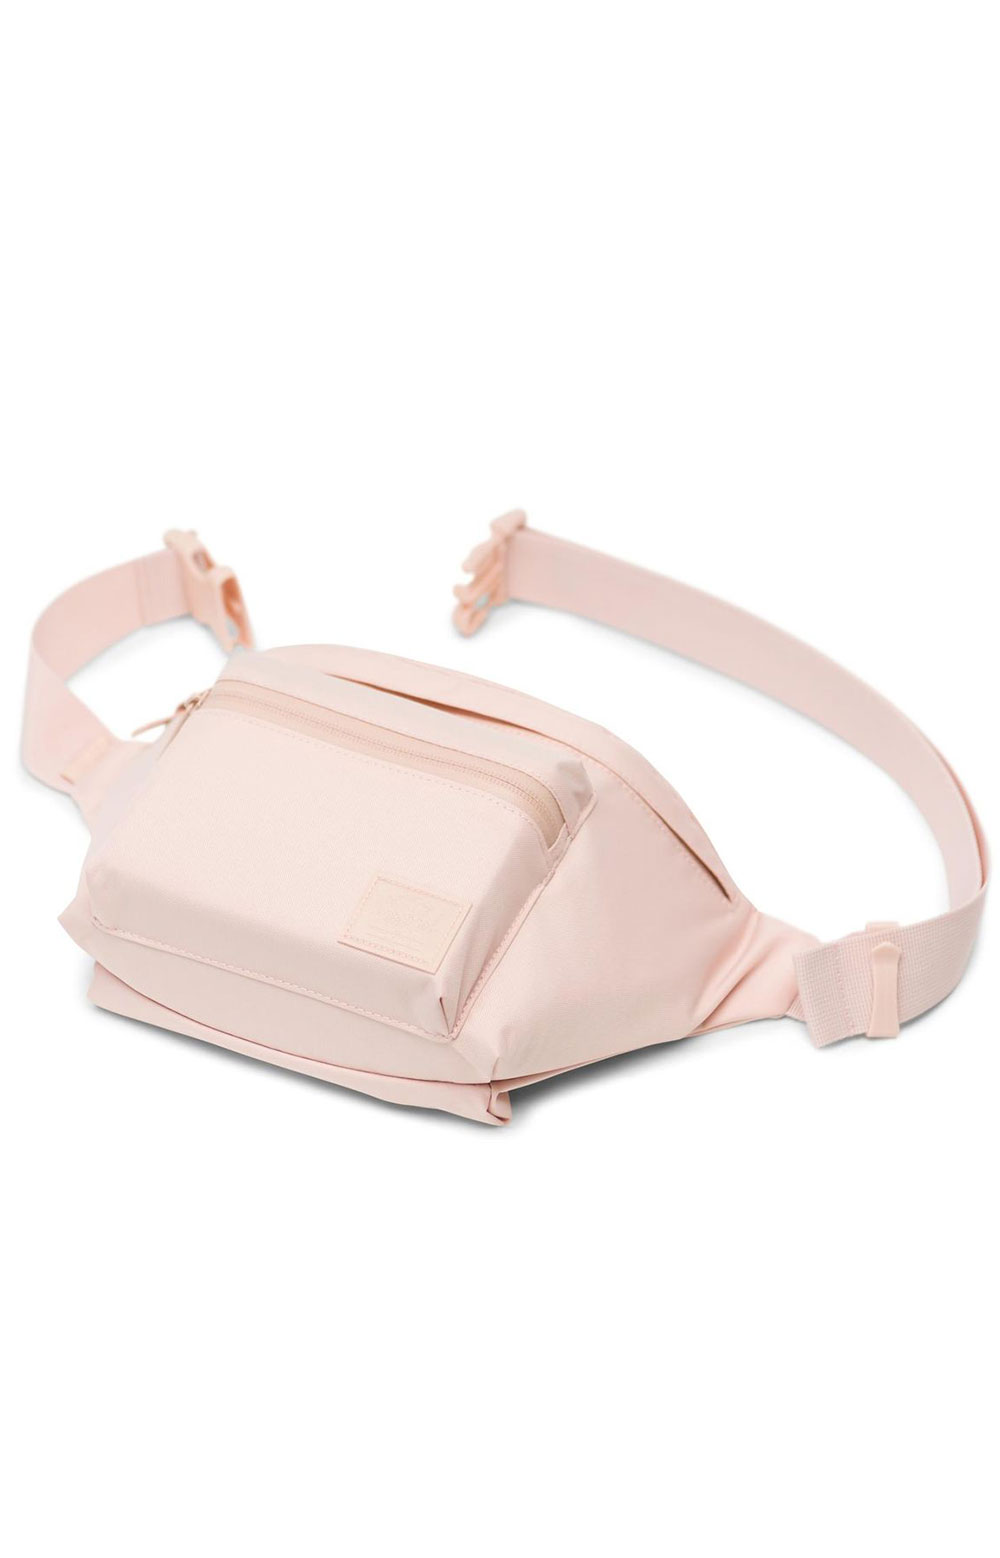 Seventeen Light Hip Pack - Cameo Rose  3